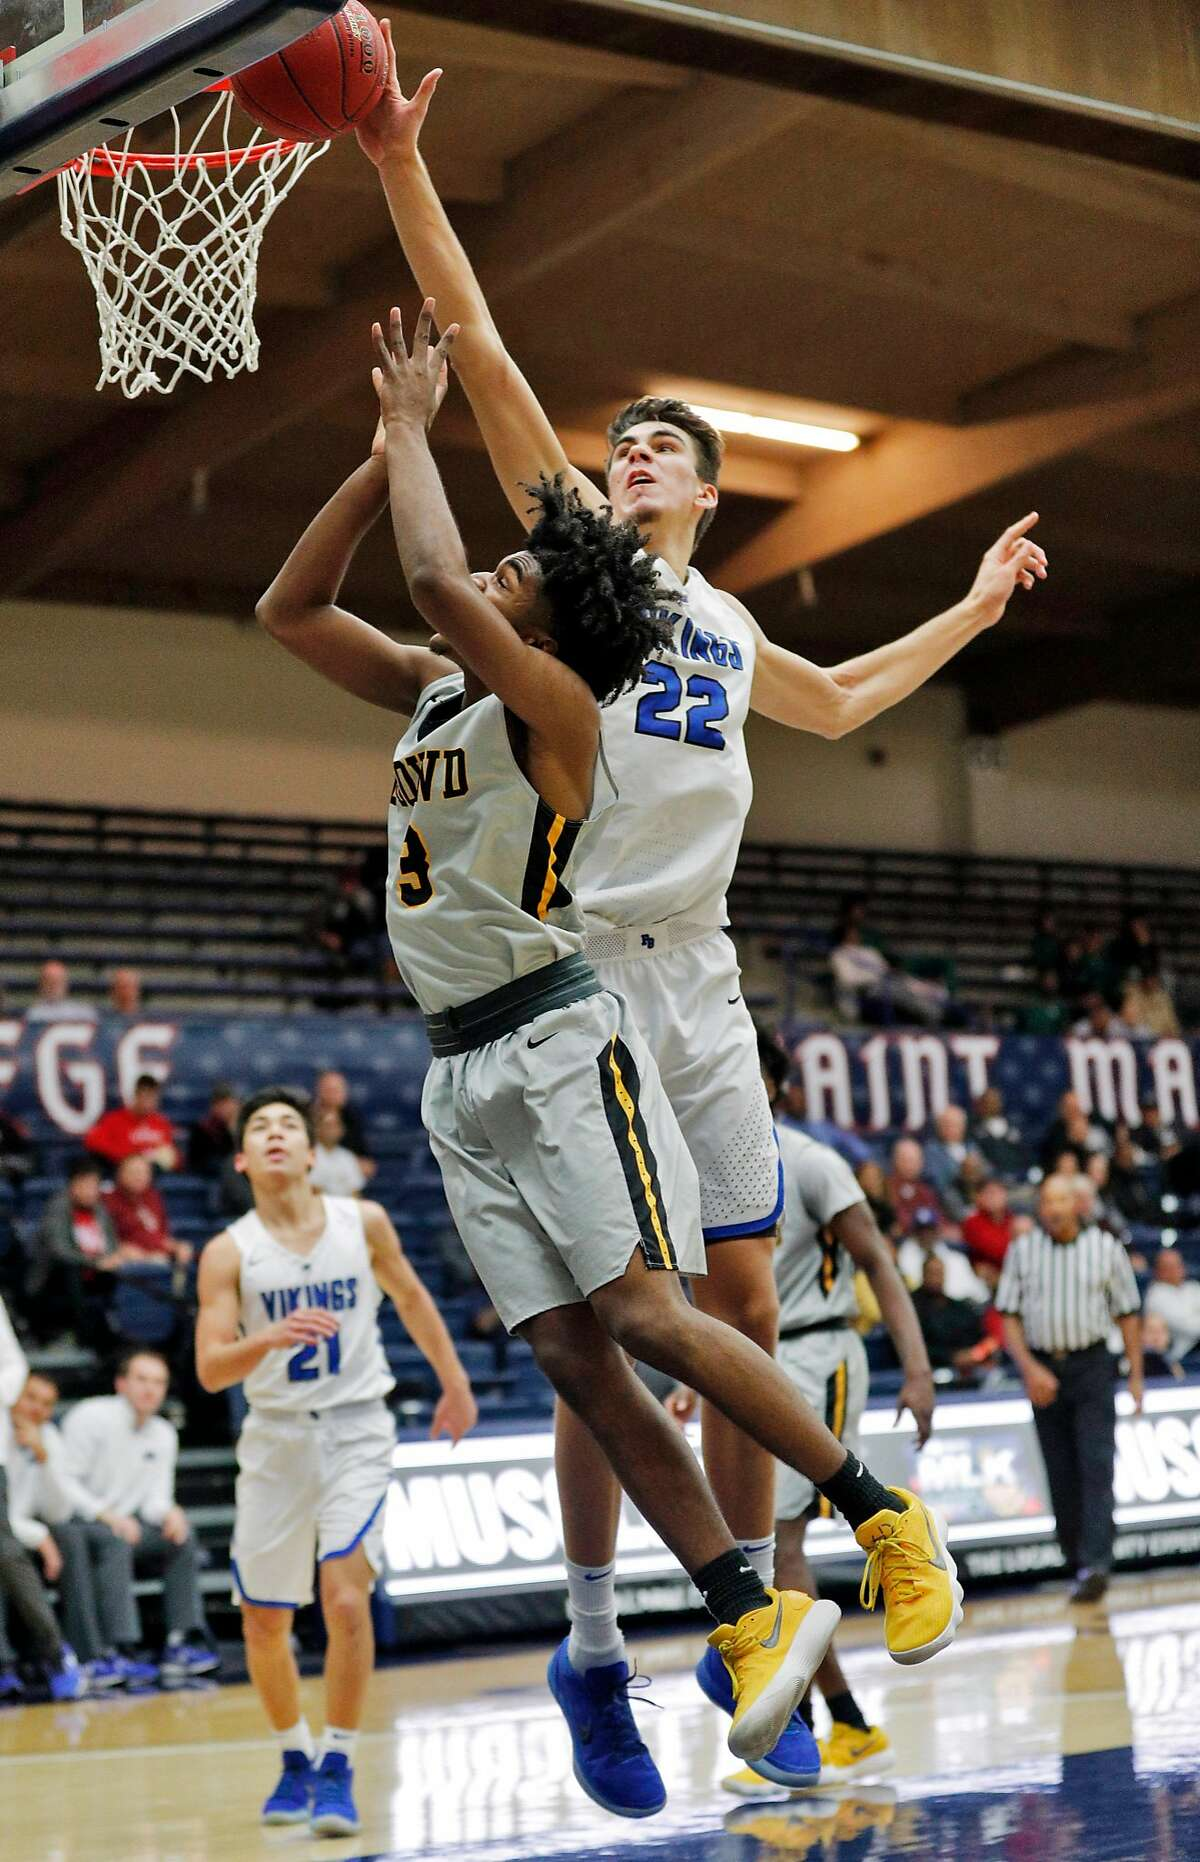 Matt Van Komen (22) blocks a shot by Brendan Patrick (3) in the first half as the Bishop O'Dowd Dragons played the Pleasant Grove (Utah) Vikings at the Martin Luther King, Jr. Classic at St. Mary's College in Moraga, Calif., on Monday, January 15, 2018.